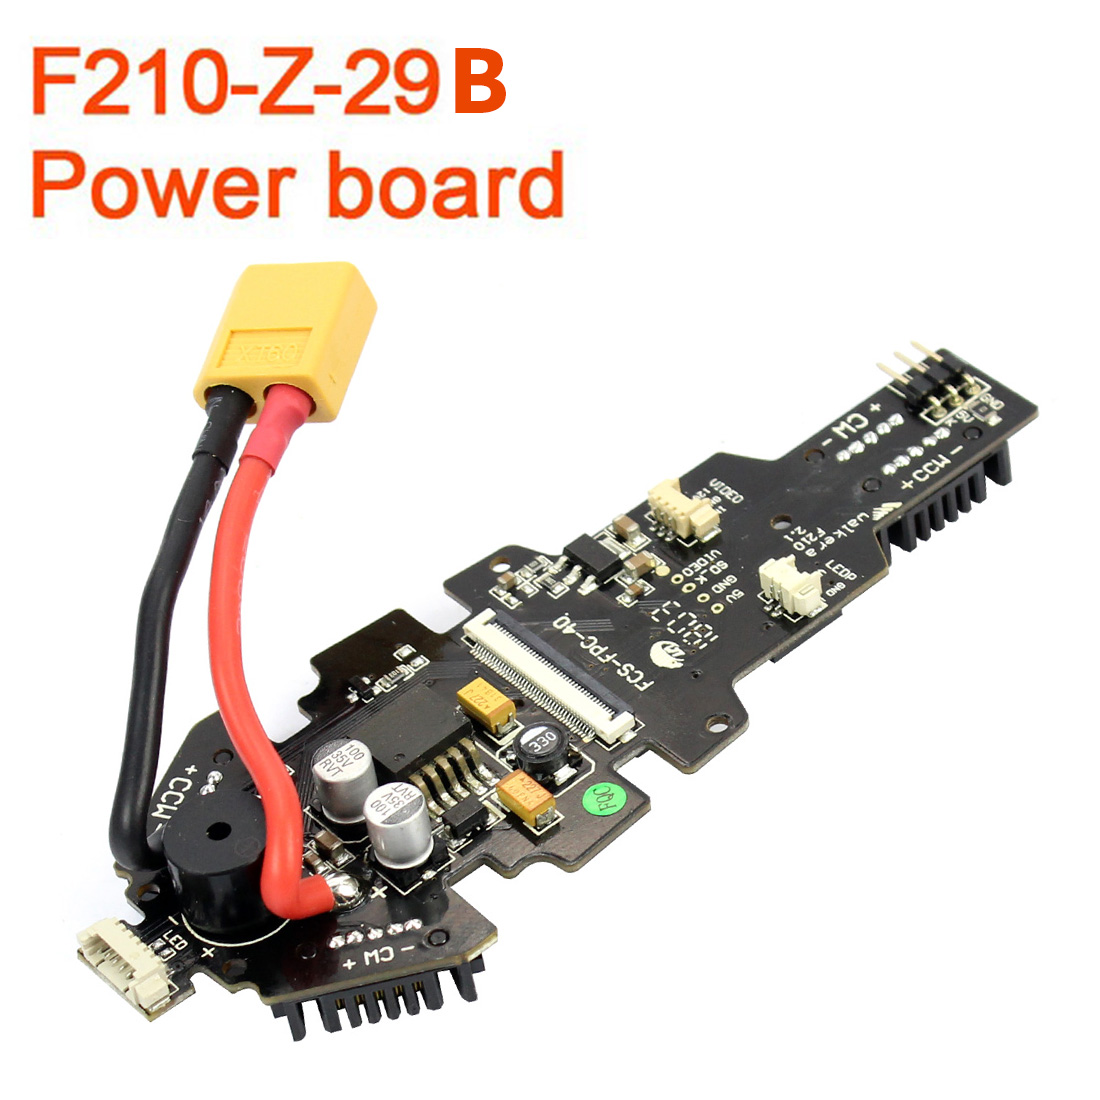 Walkera F210 RC Helicopter Quadcopter Spare Parts F210-Z-29B Power Board Drone Accessory Kits F17452